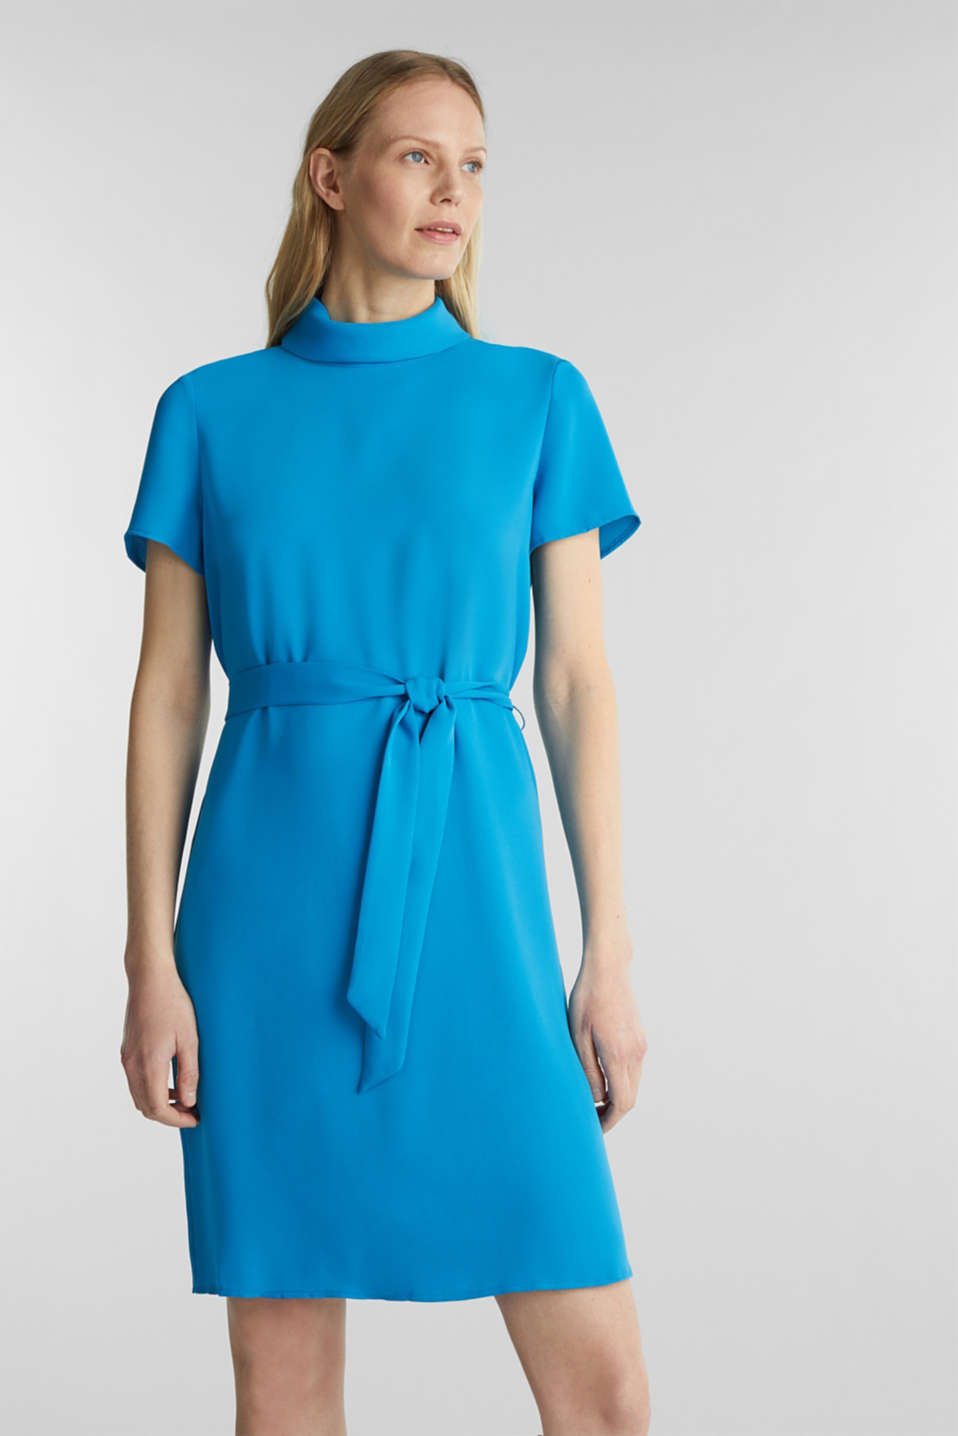 Cloth polo neck dress, DARK TURQUOISE, detail image number 0